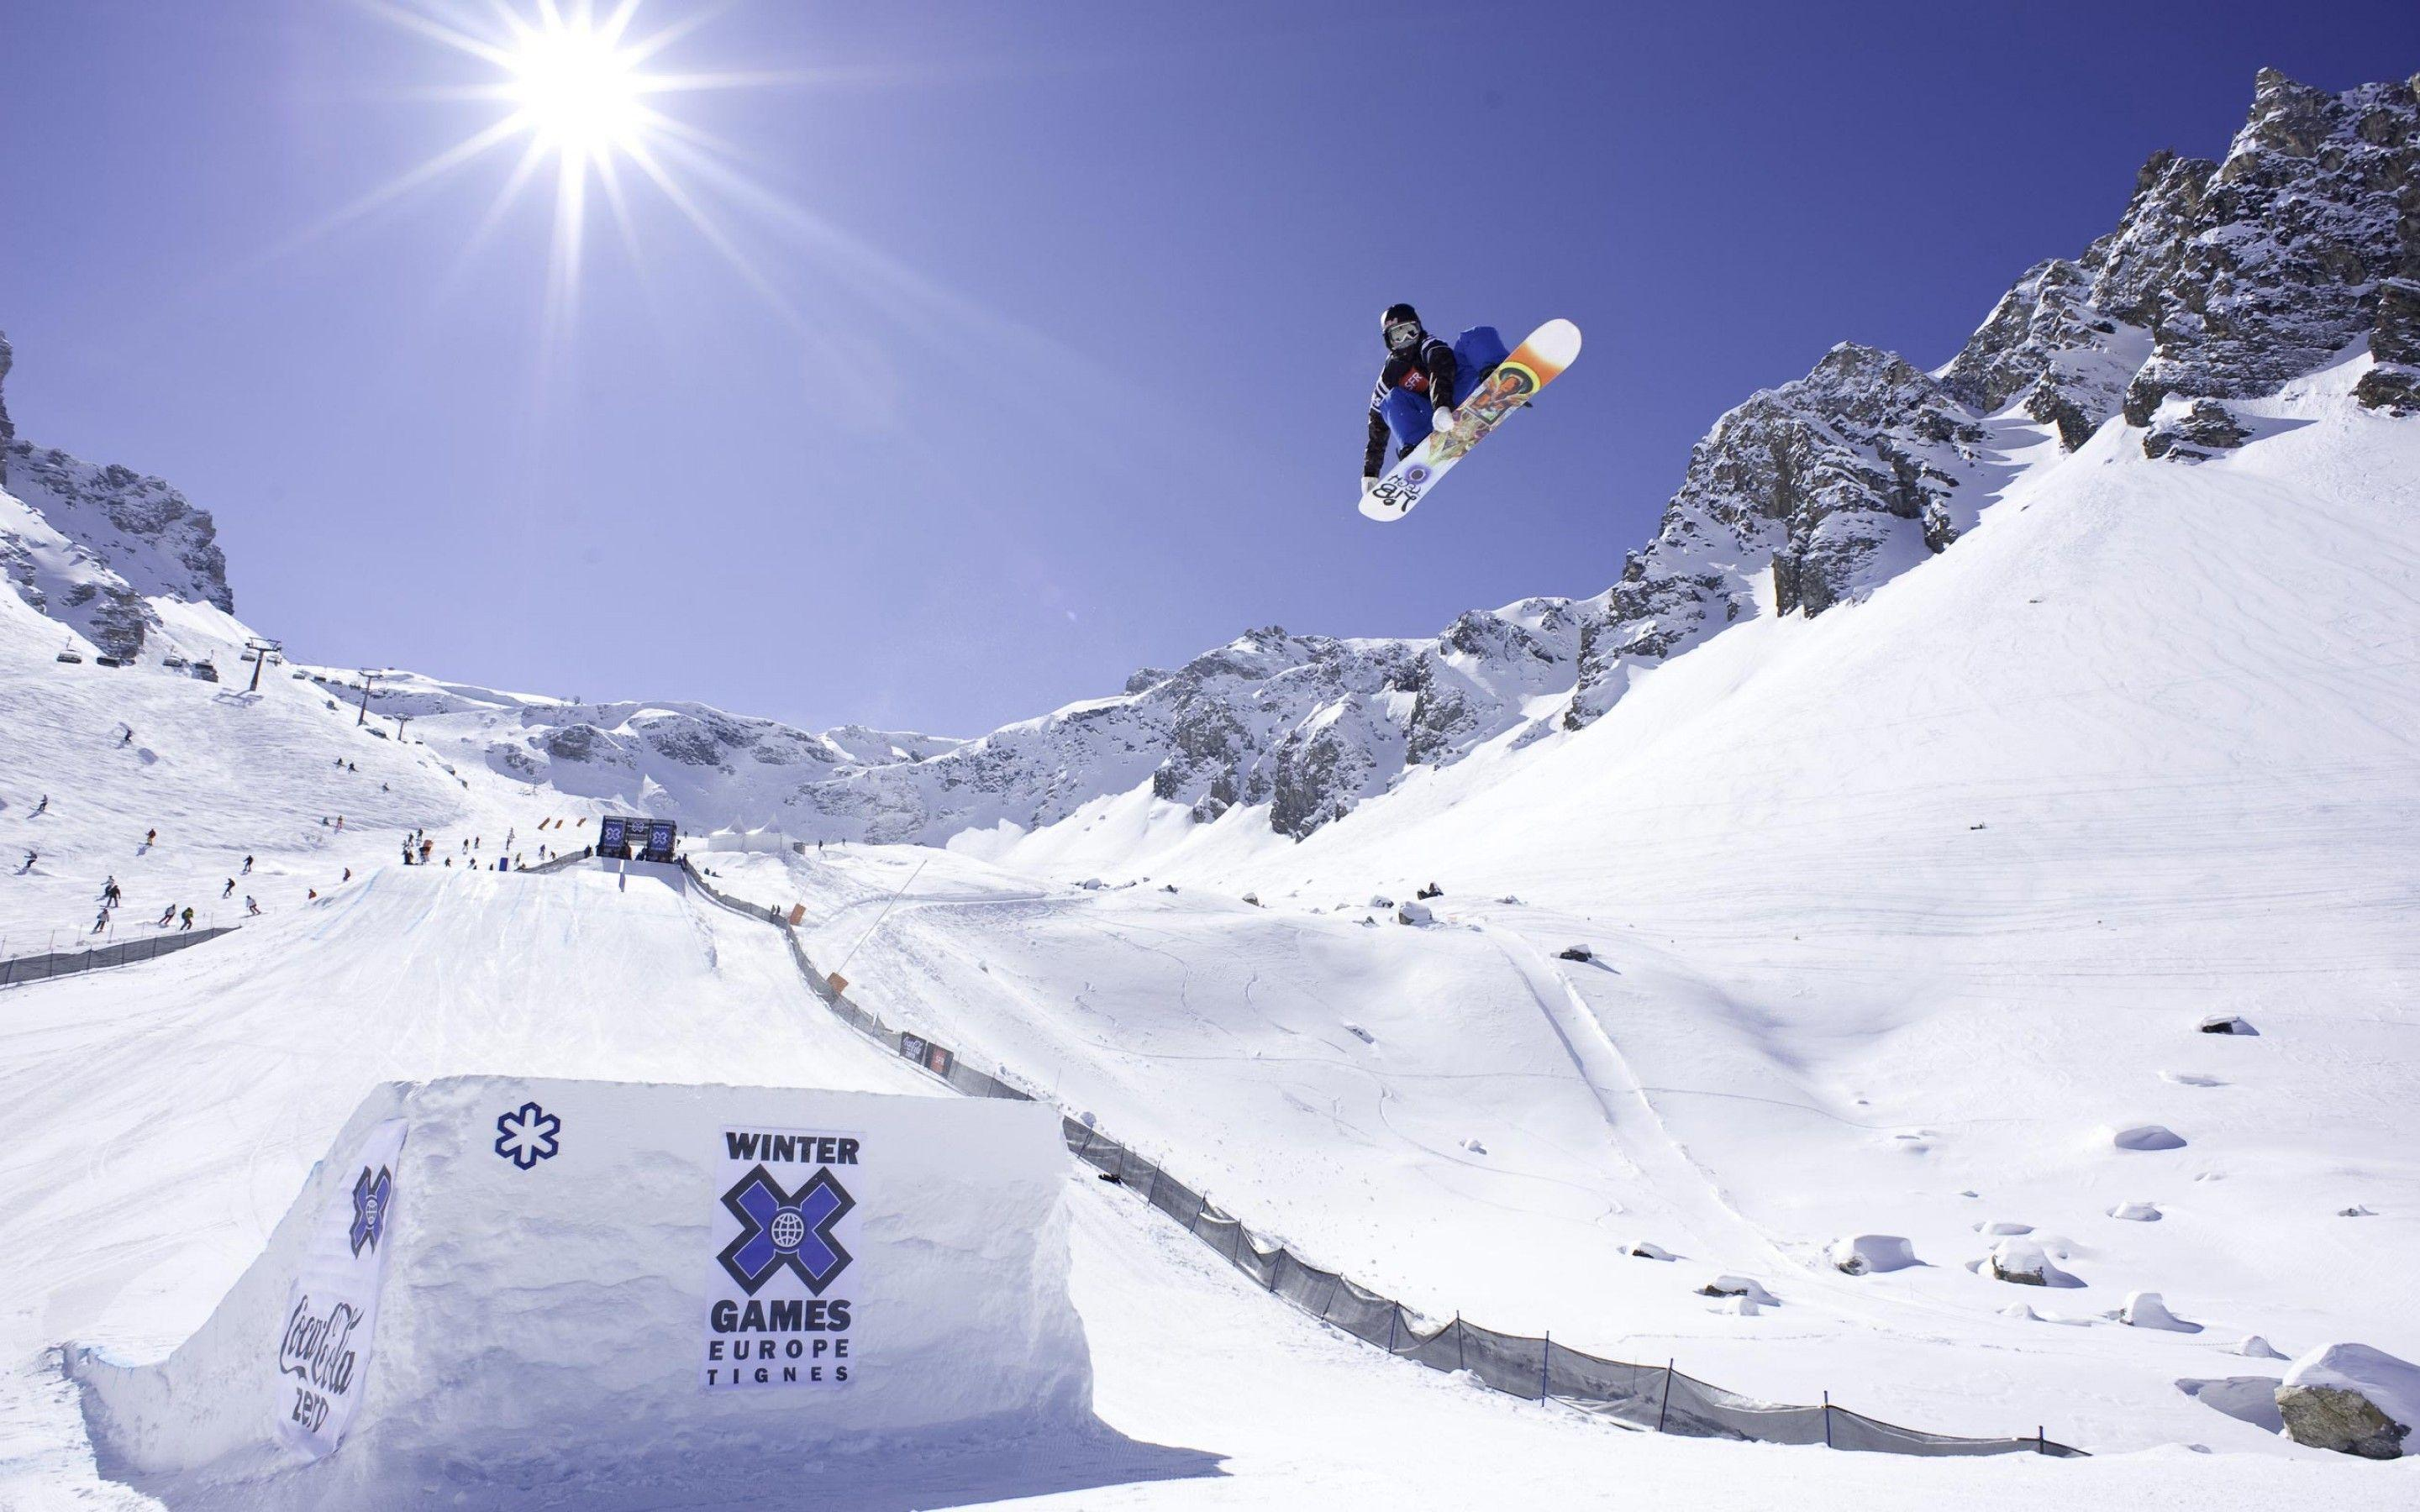 snowboard outdoor wallpaper desktop - photo #9